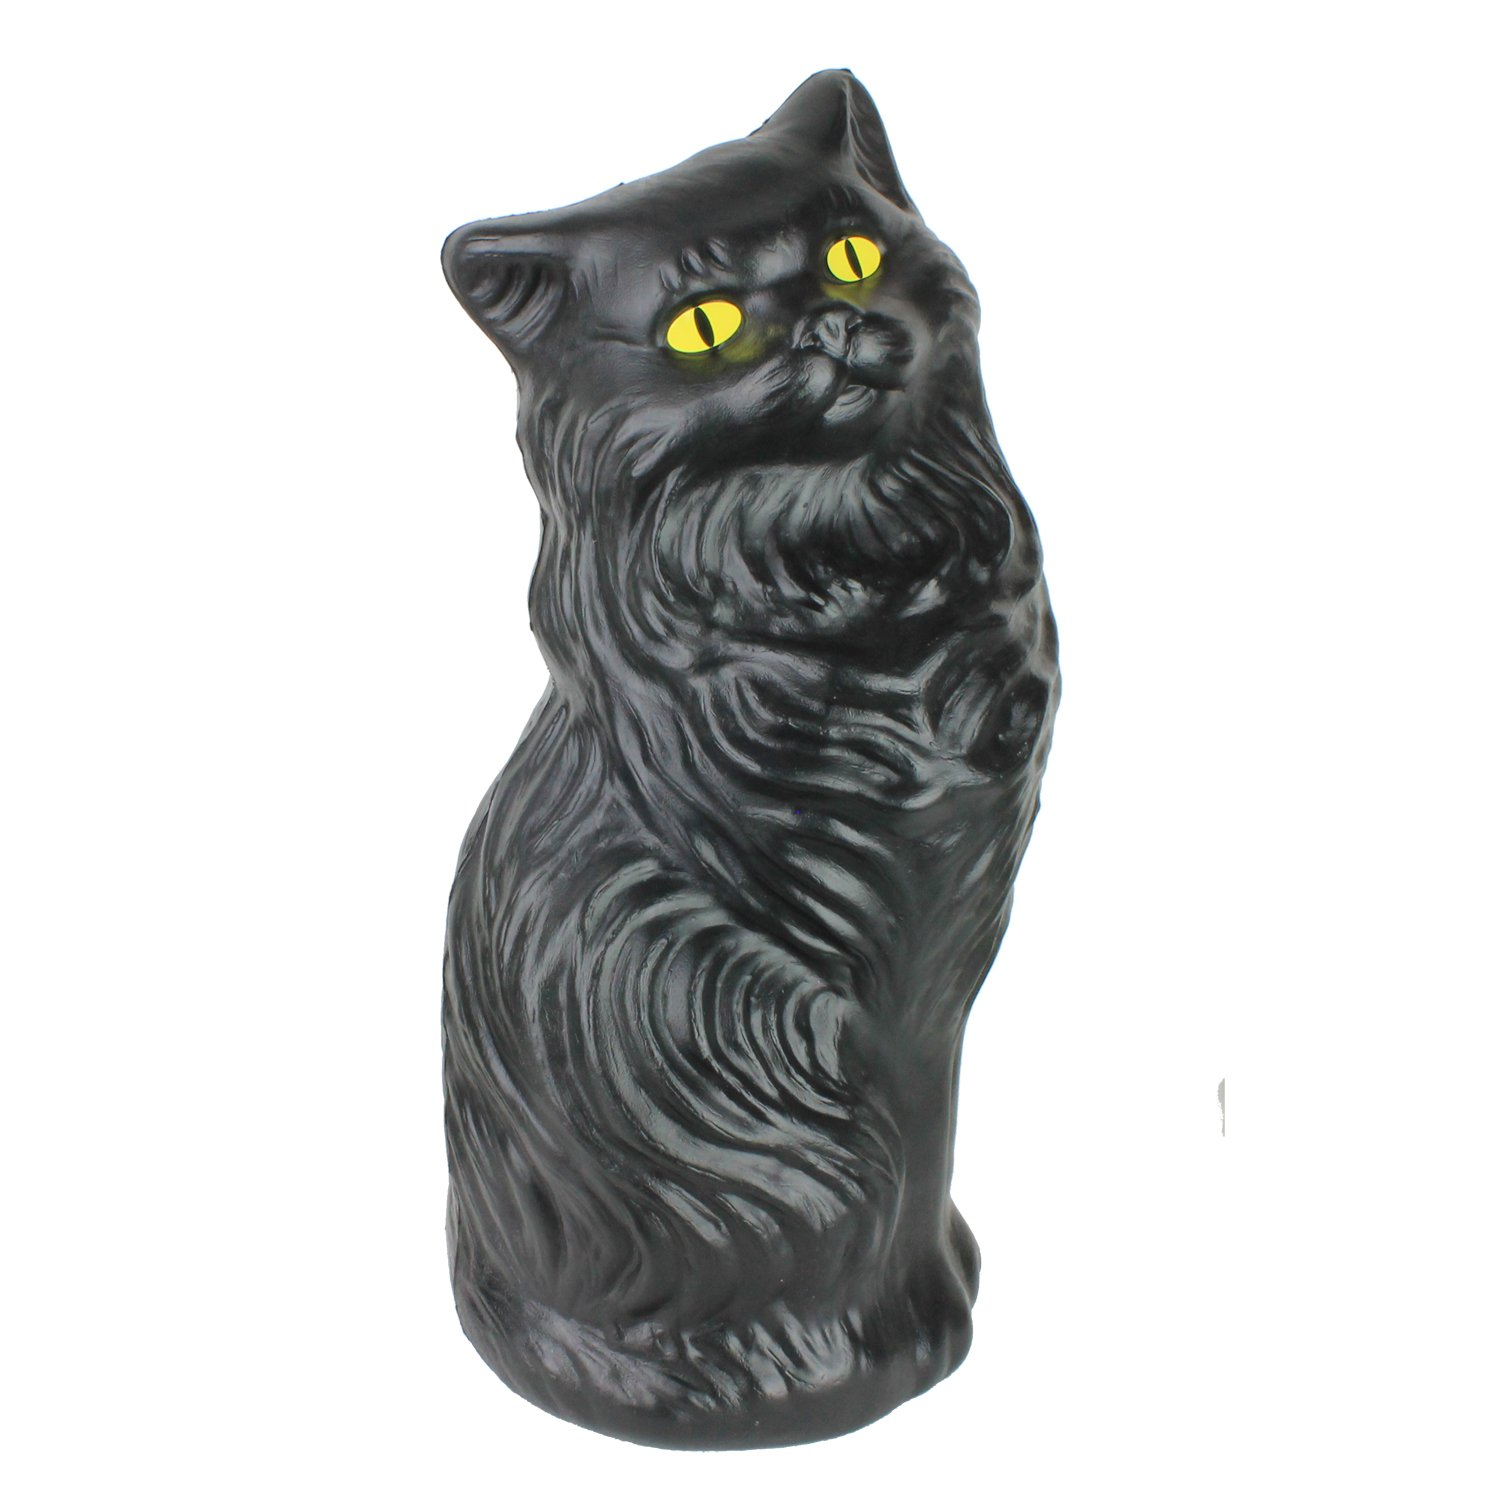 Fantazia Marketing Black Cat Money Bank 17 inch Plastic Blow-Mold Decoration - Classic Retro Design by Fantazia Marketing